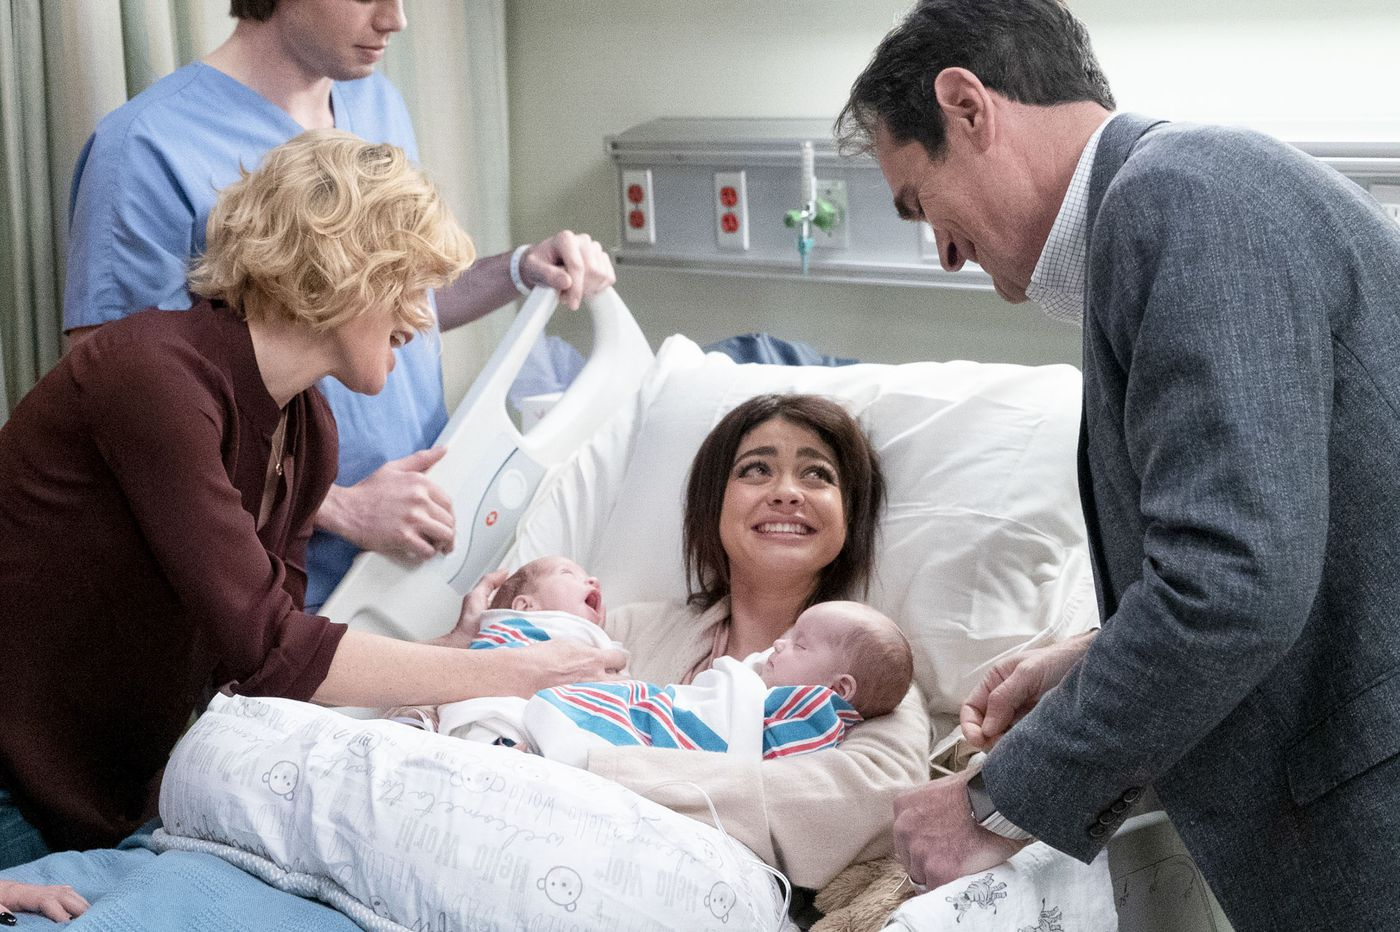 TV's 'Modern Family' misses chance to promote safe sleeping for infants